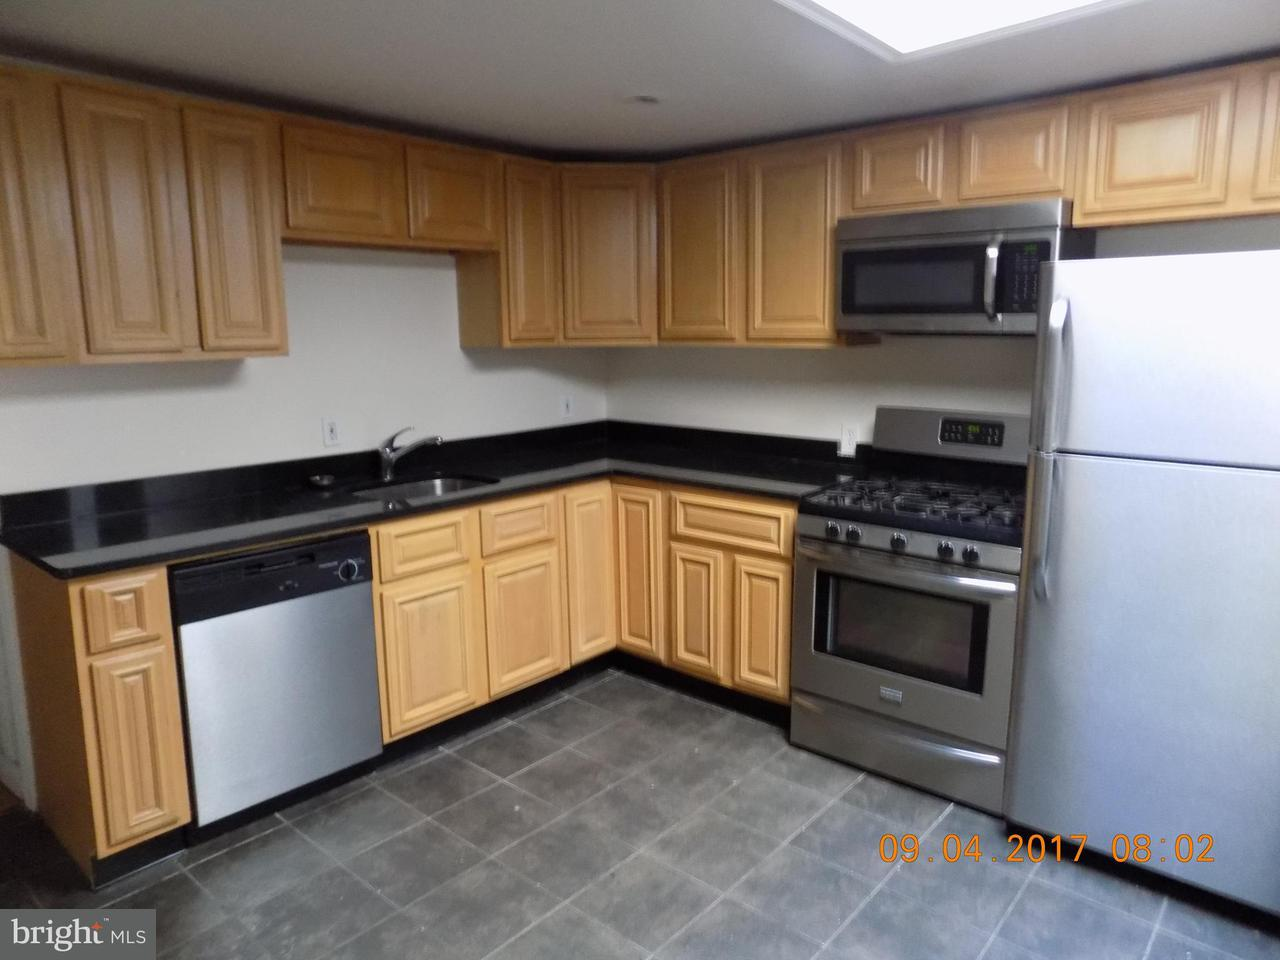 Other Residential for Rent at 1531 Hanover St Baltimore, Maryland 21230 United States